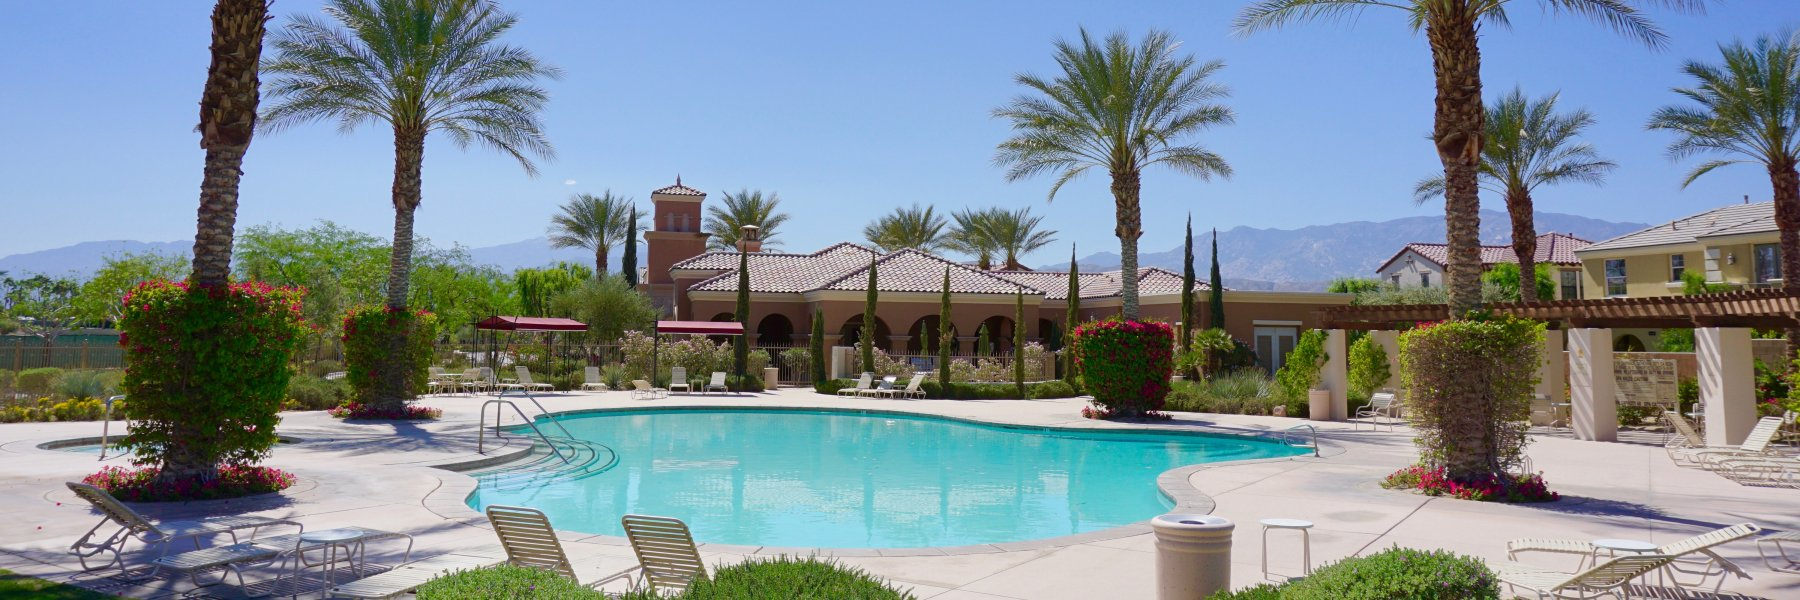 Campanile is a community of homes in Cathedral City California